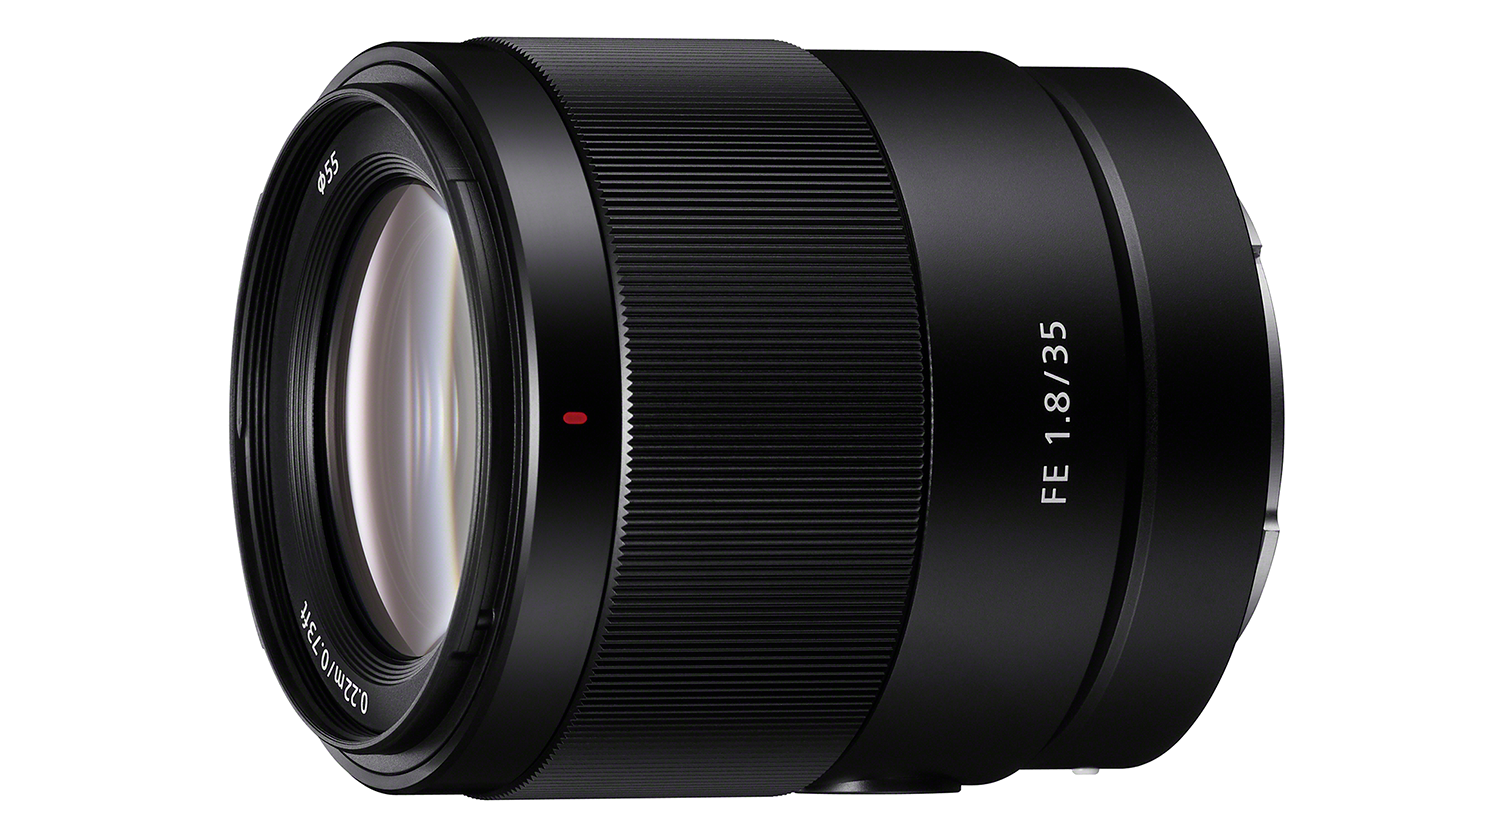 Sony 35mm lens announced